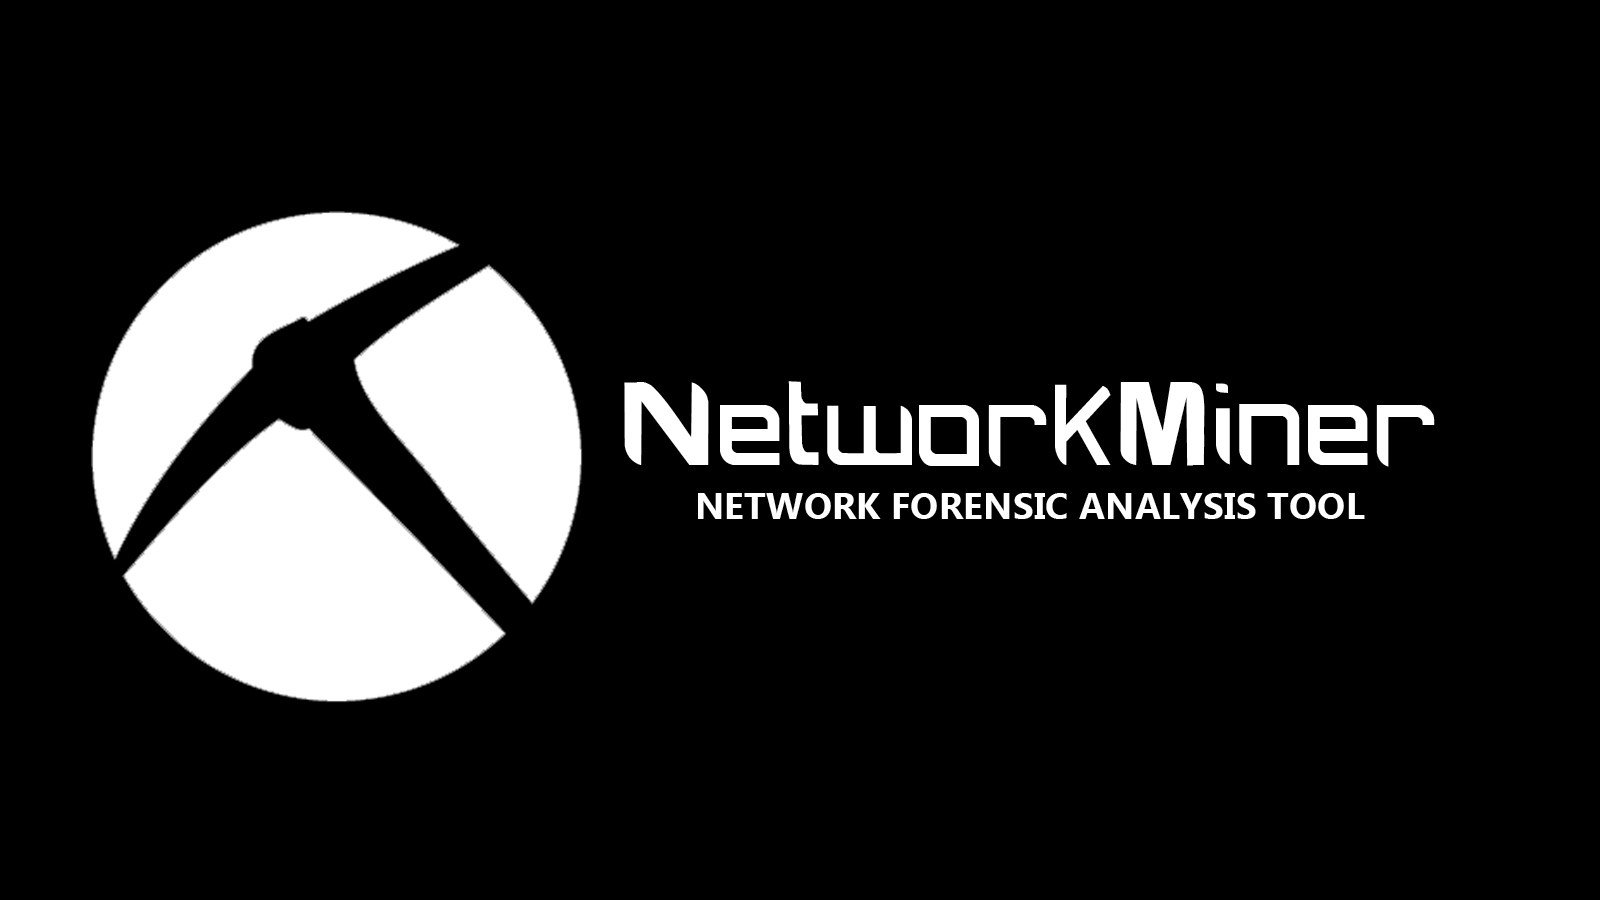 NetworkMiner - Network Forensic Analyzer